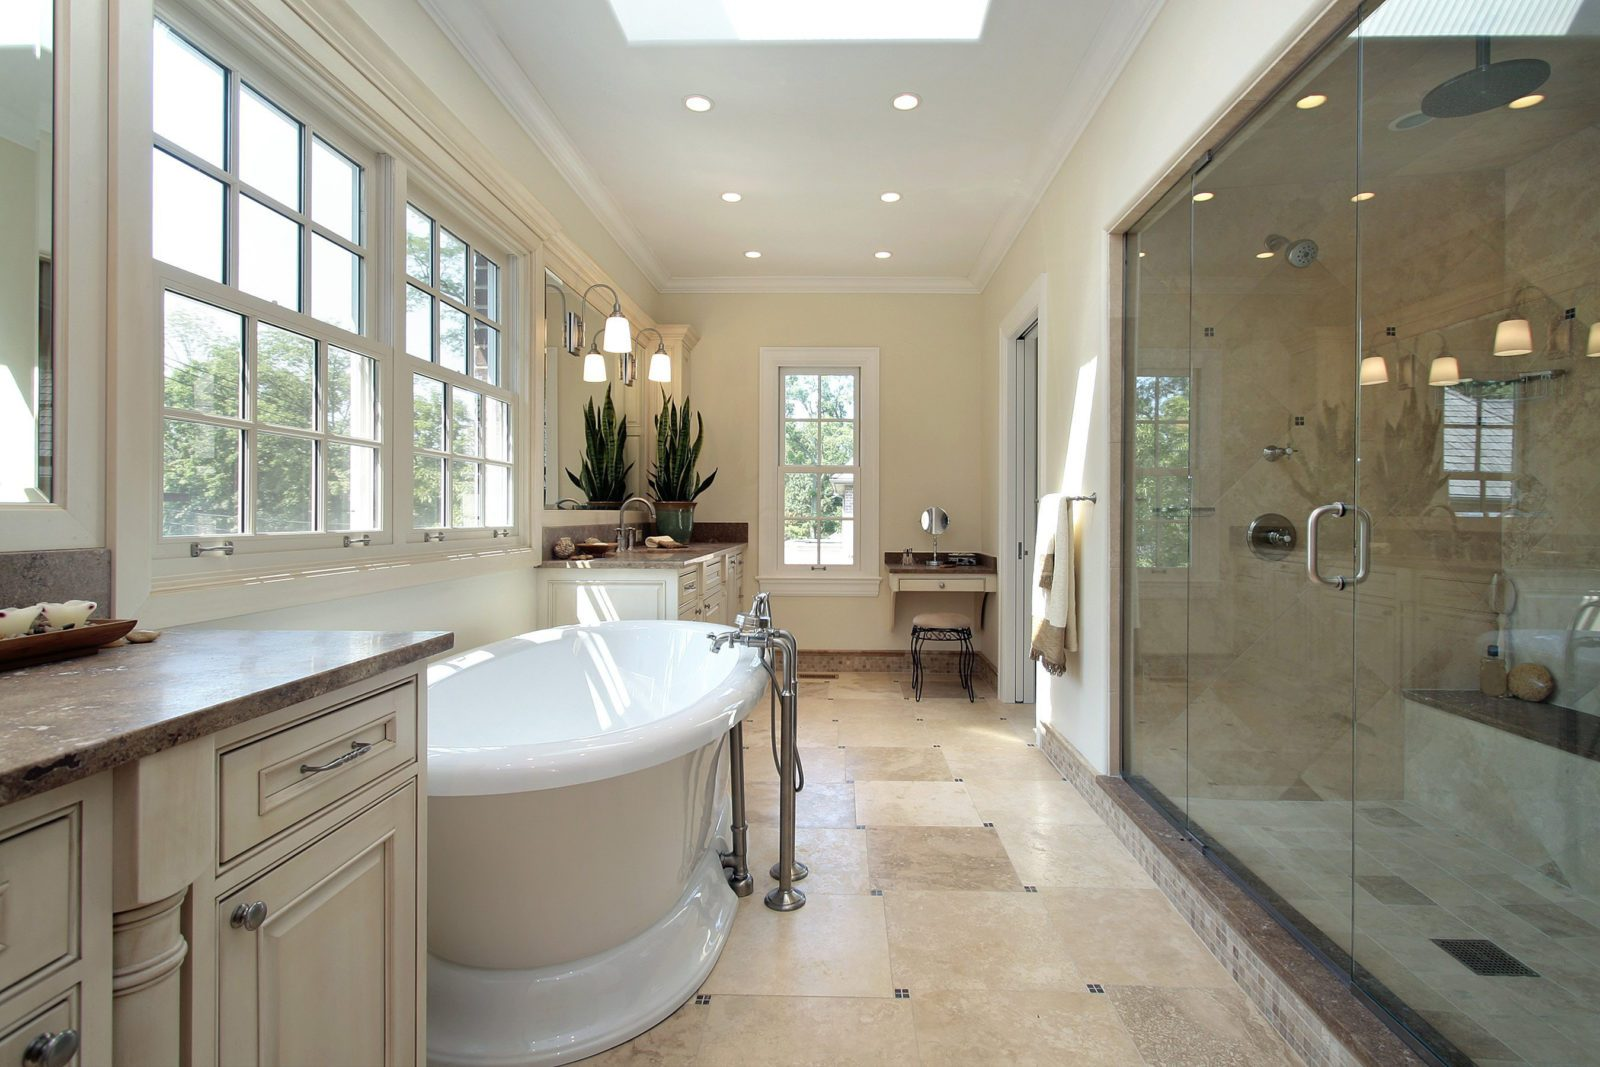 Bathroom remodel bay easy construction - Pictures of remodeled small bathrooms ...